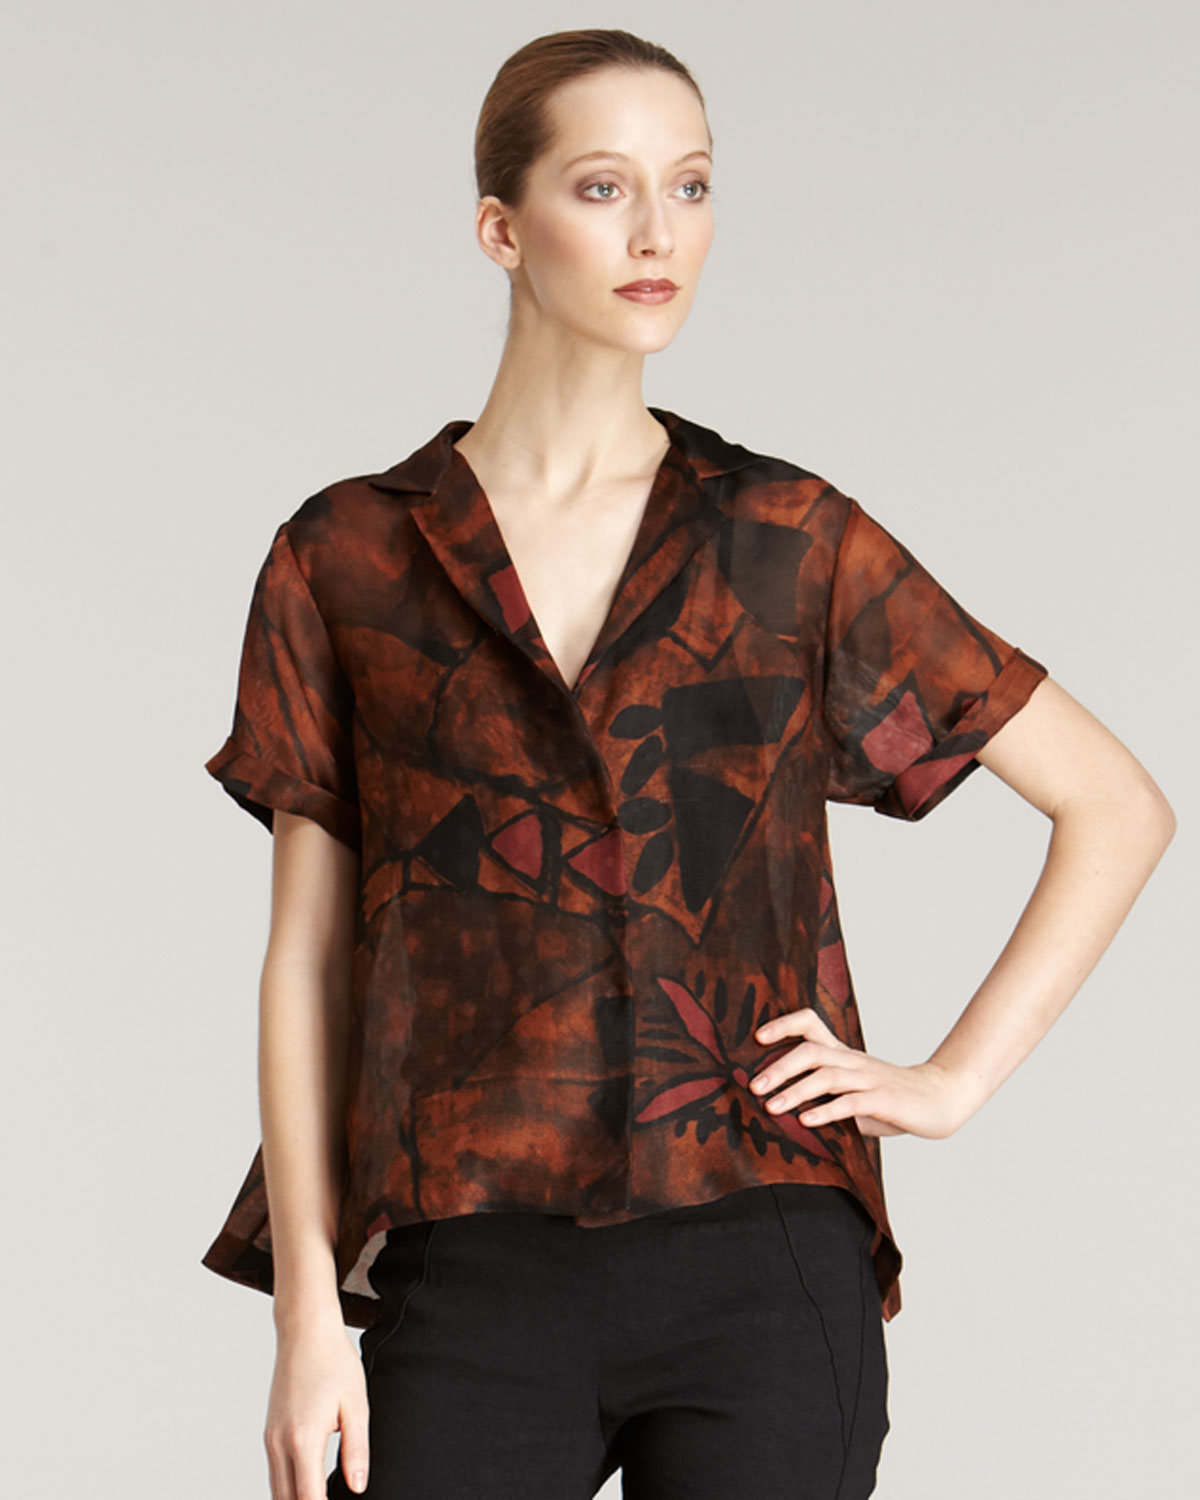 Donna karan new york silk gazar shirt in orange for Donna karen new york